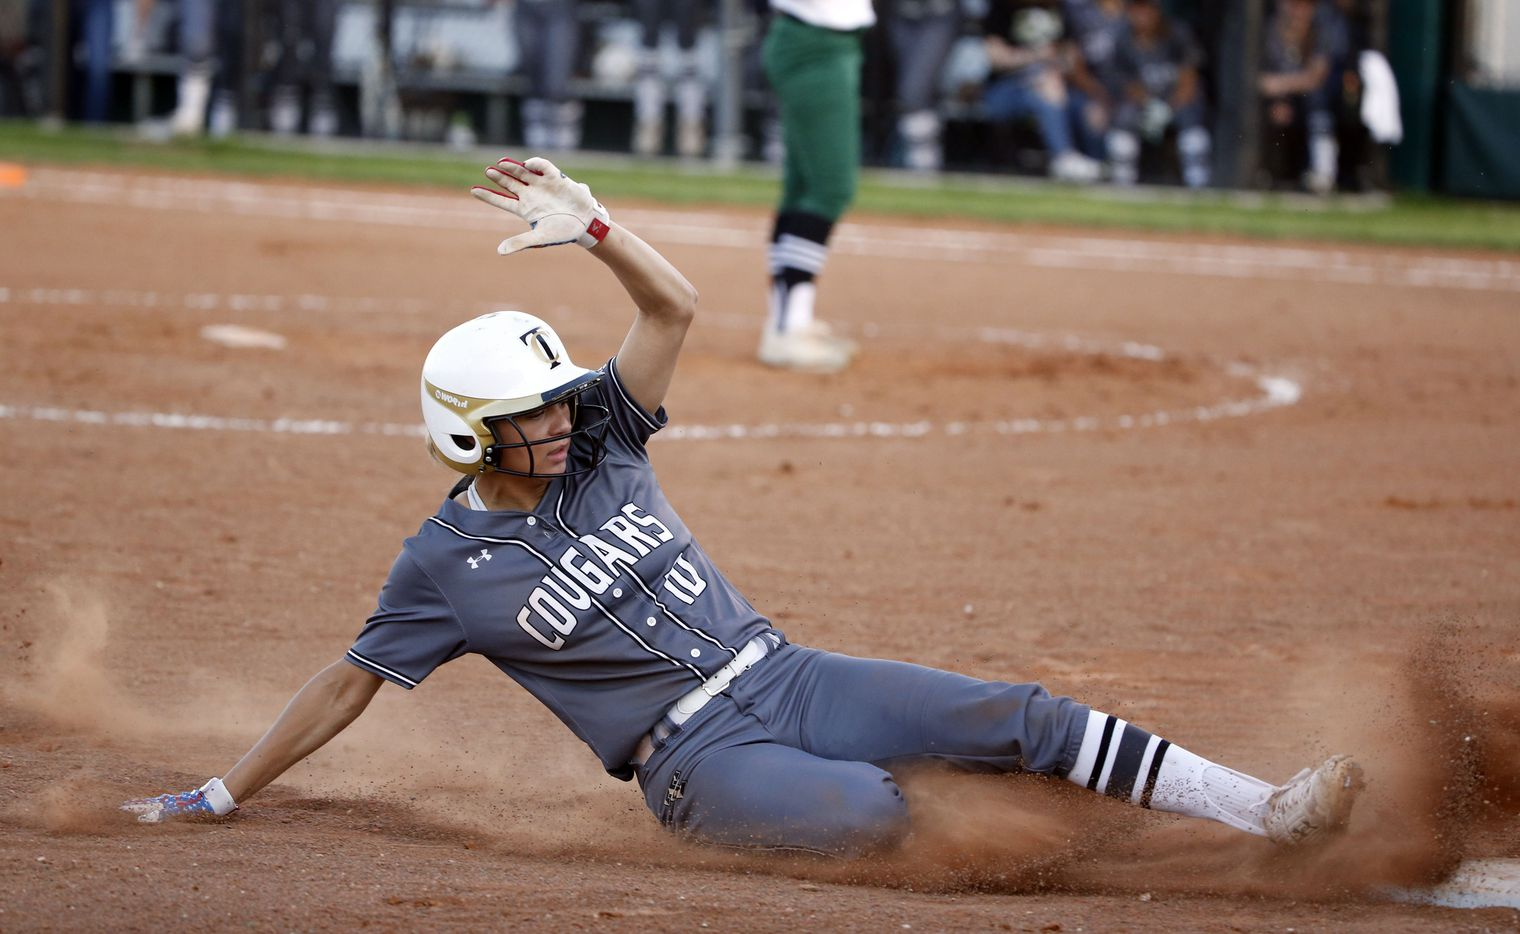 The Colony's Jayda Coleman (10) slides safely into third base against Birdville during game 2 of the Class 5A Bi-District girls softball playoffs on April 26, 2019. (Michael Ainsworth/Special Contributor)